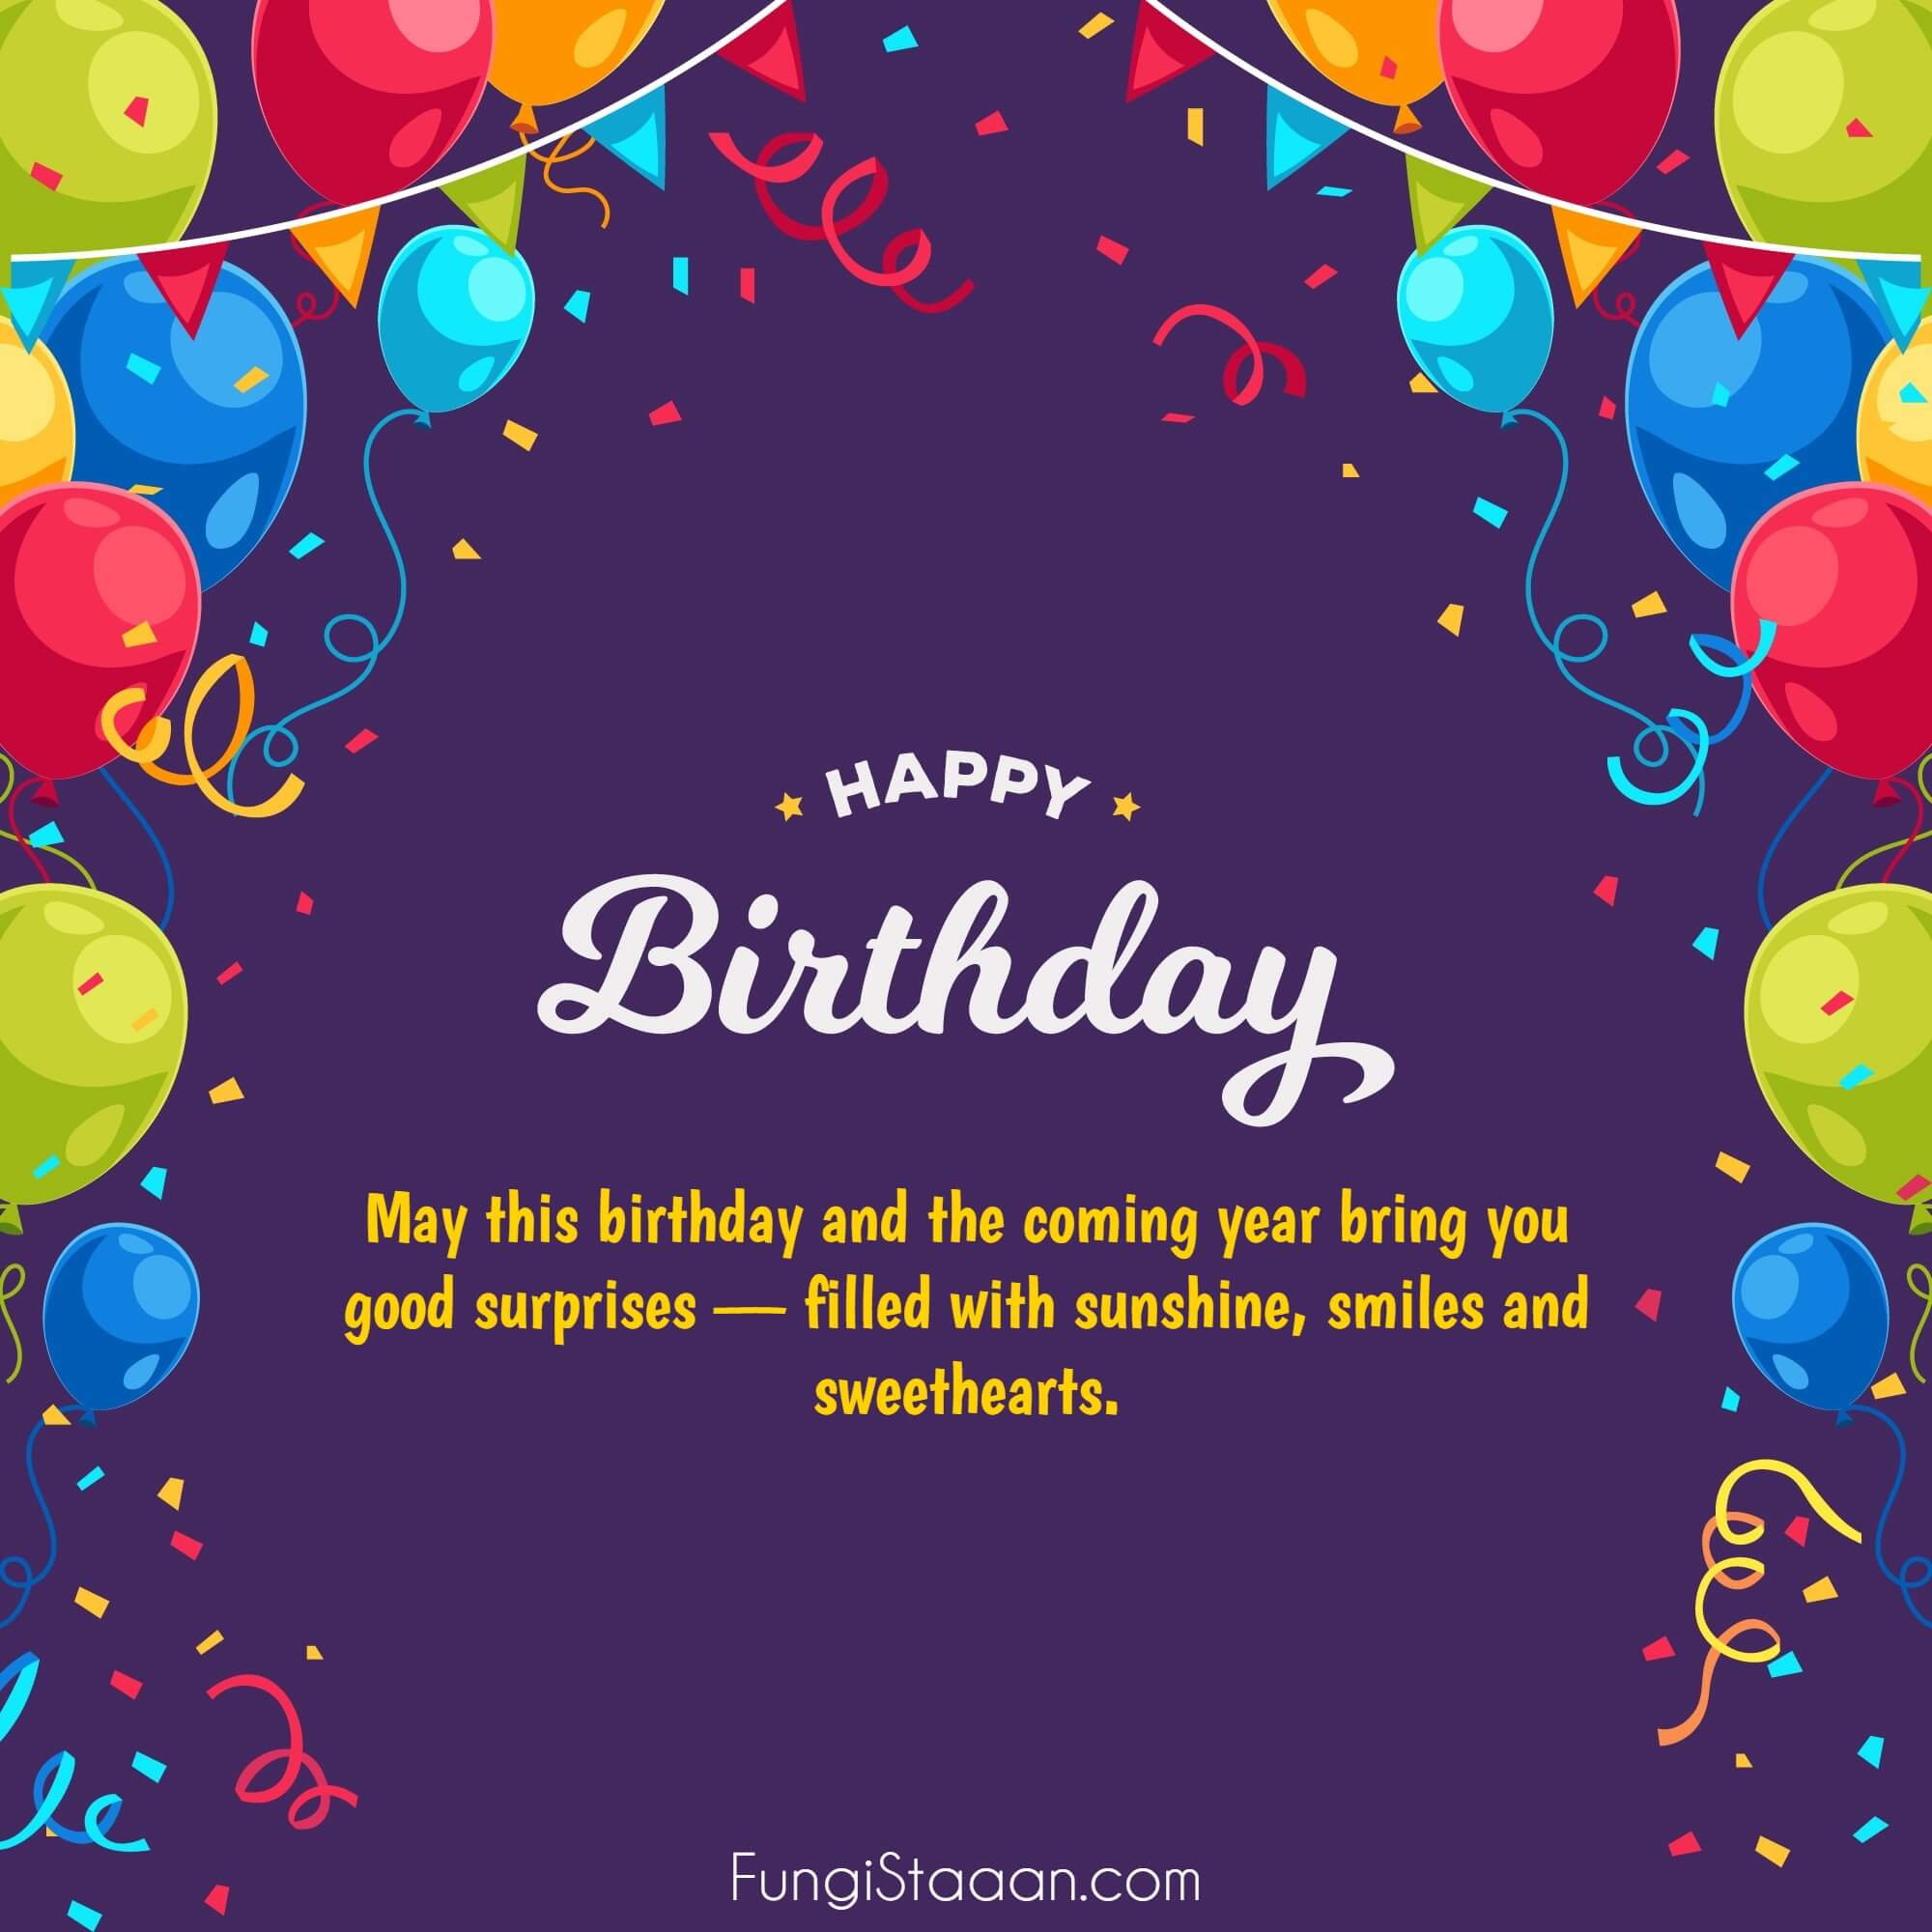 Happy Birthday Images And Quotes: TOP 100+ Happy Birthday Images Pictures Download